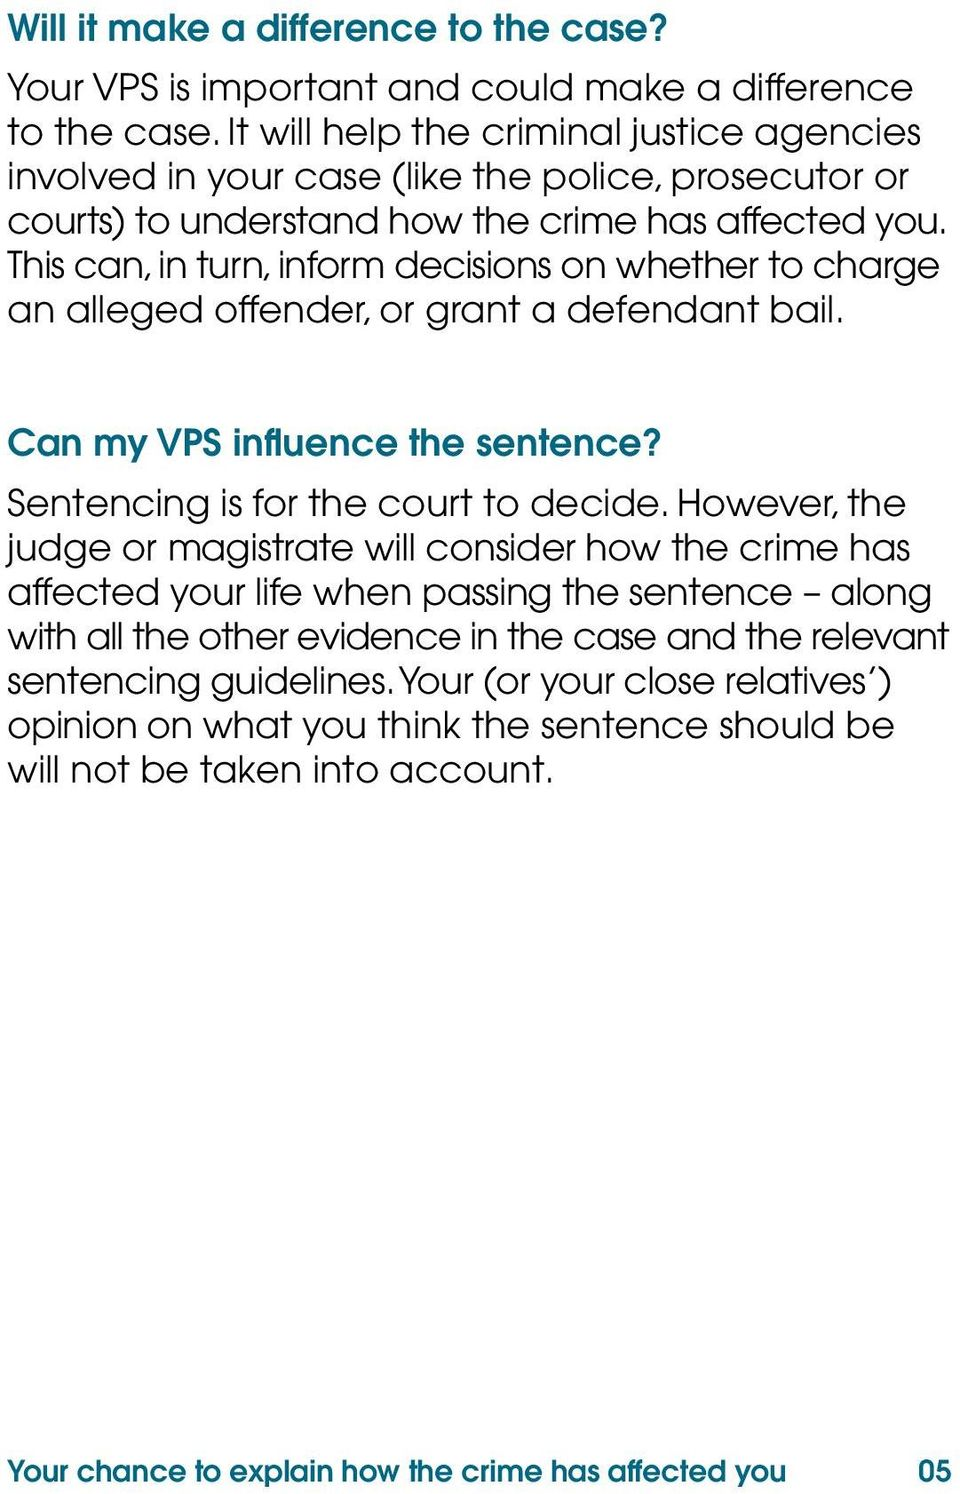 This can, in turn, inform decisions on whether to charge an alleged offender, or grant a defendant bail. Can my VPS influence the sentence? Sentencing is for the court to decide.